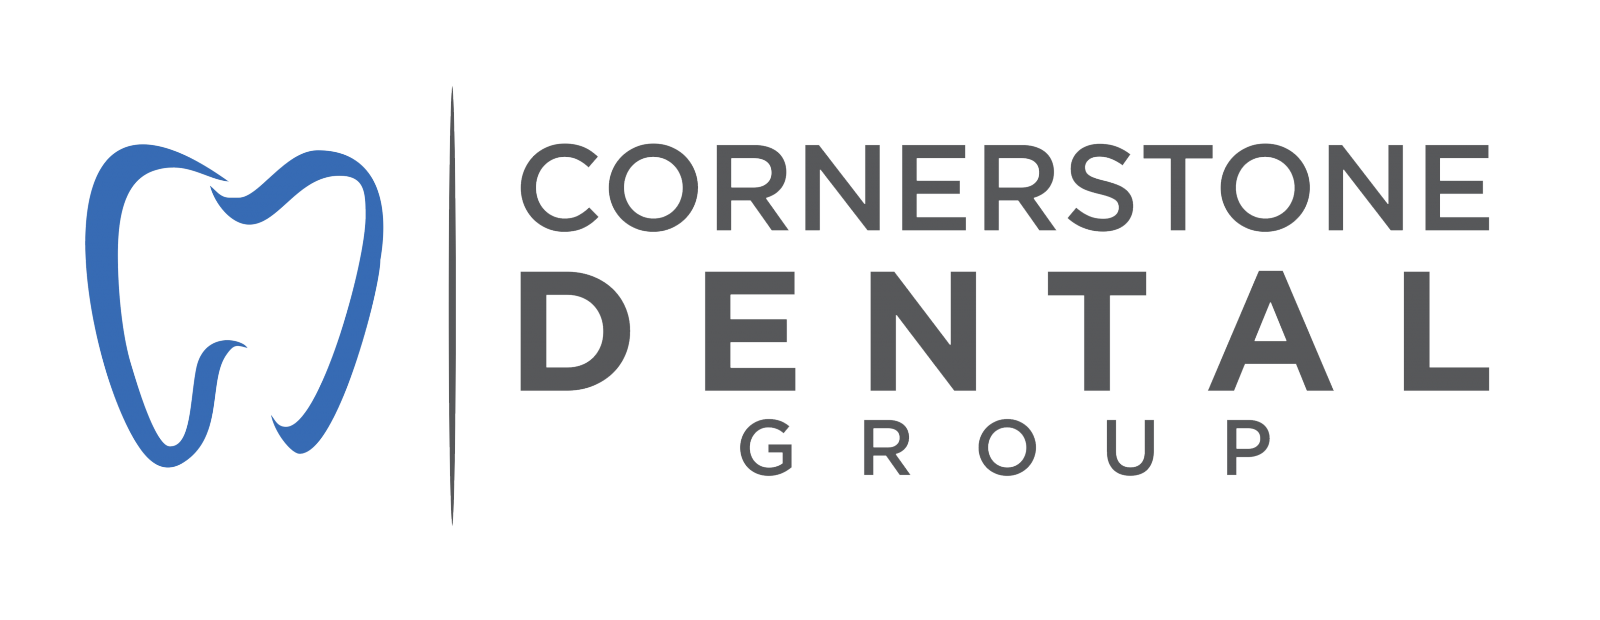 Cornerstone Dental